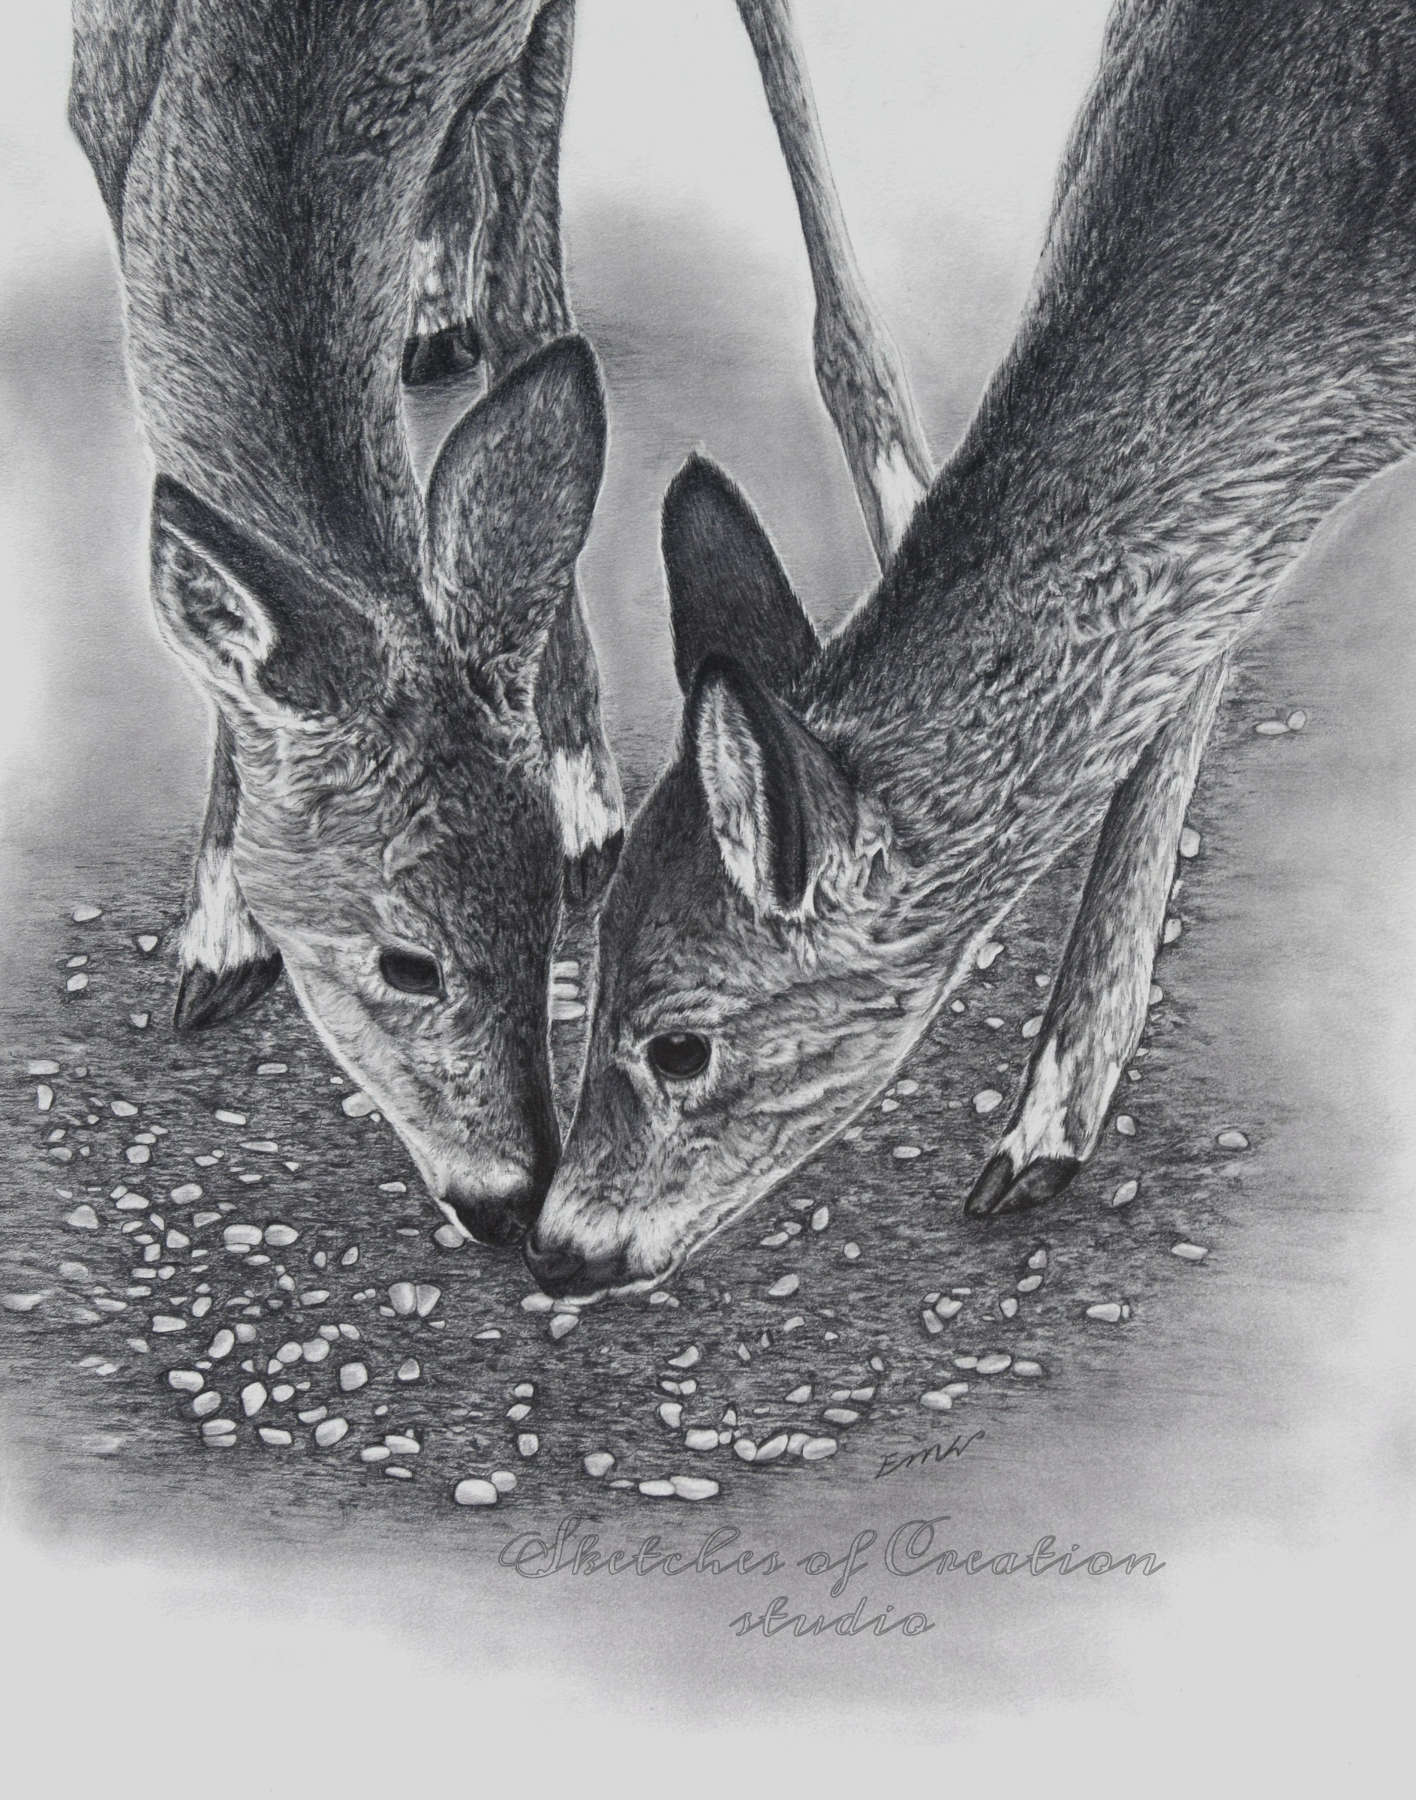 'Siblings' a drawing of two young deer. 11x14 inches. Completed June 2019